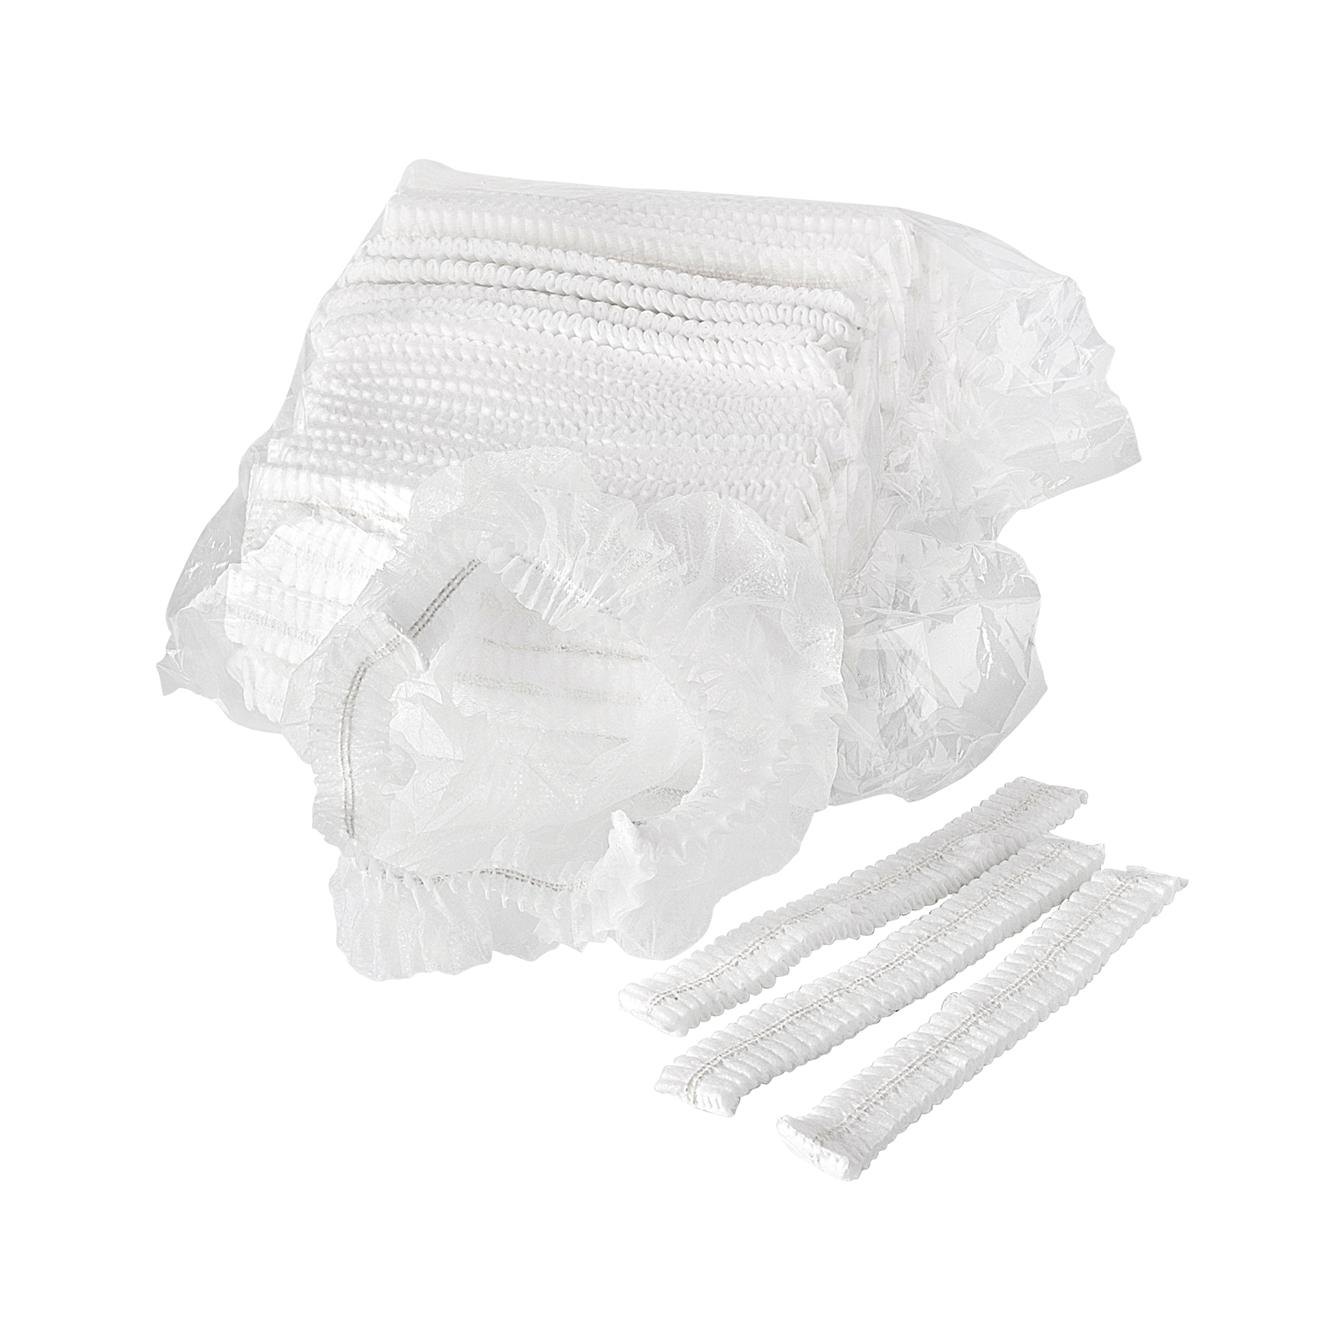 Fake Bake Hair Nets 24 Pieces Per Pack